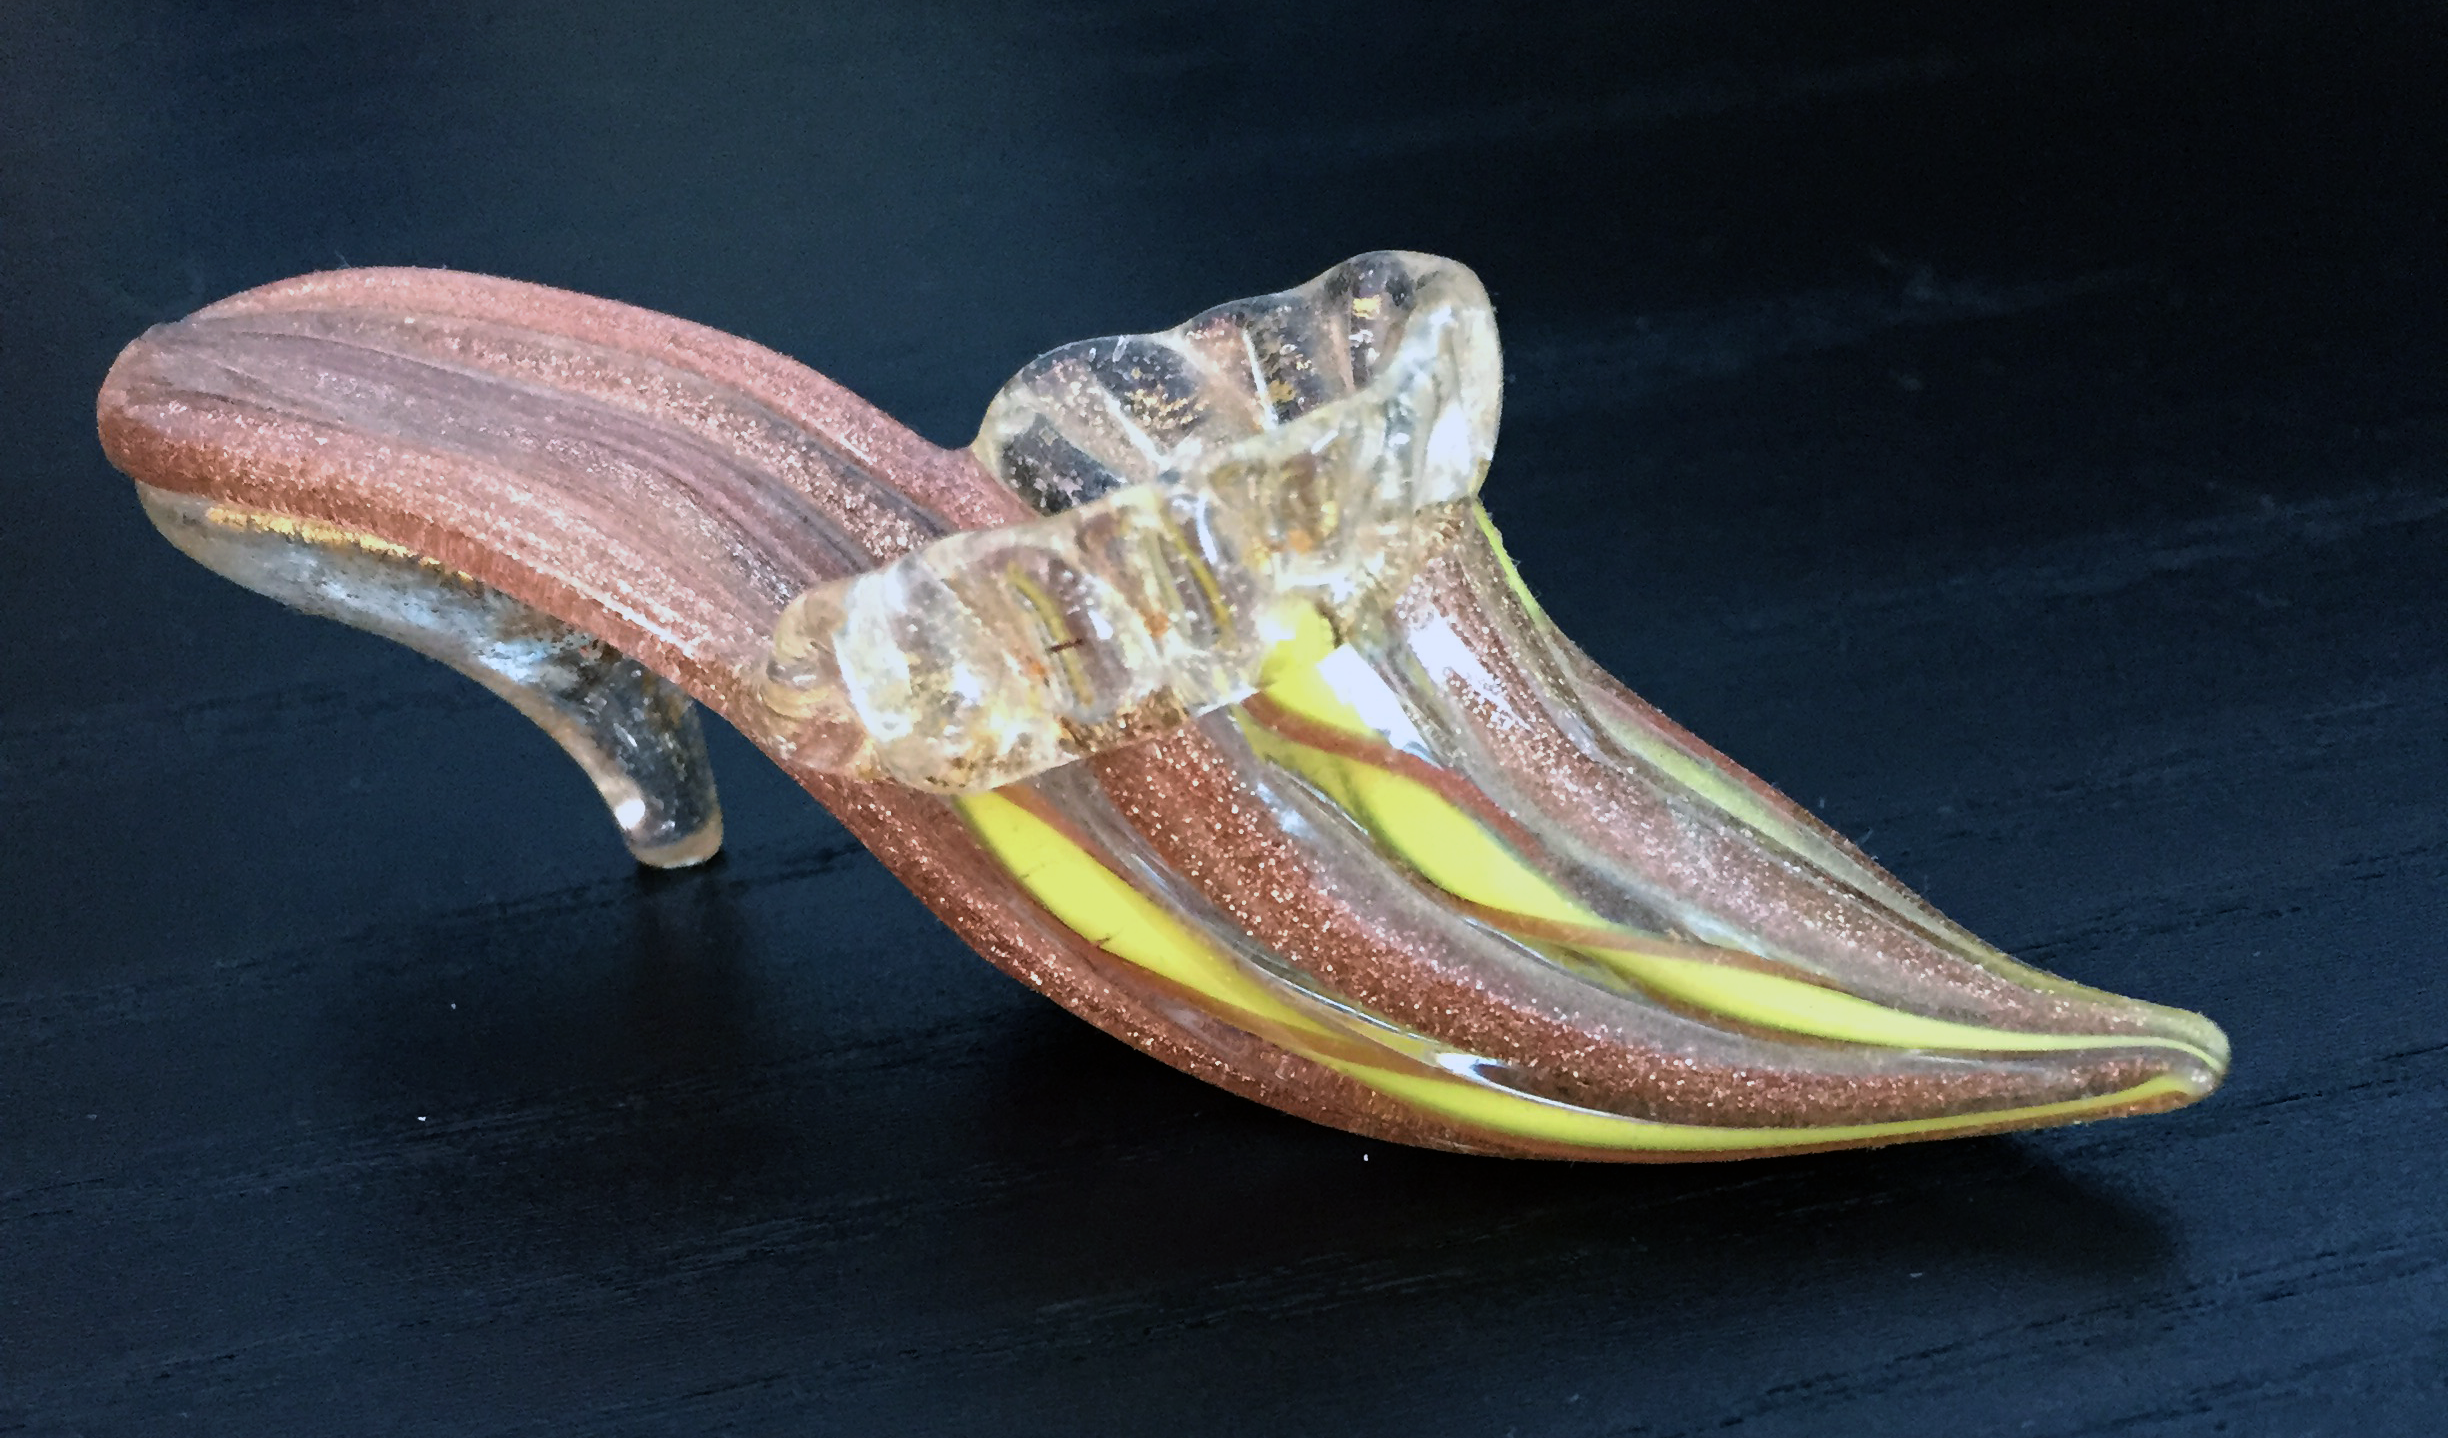 Venetian glass slipper from my miniature shoes collection.